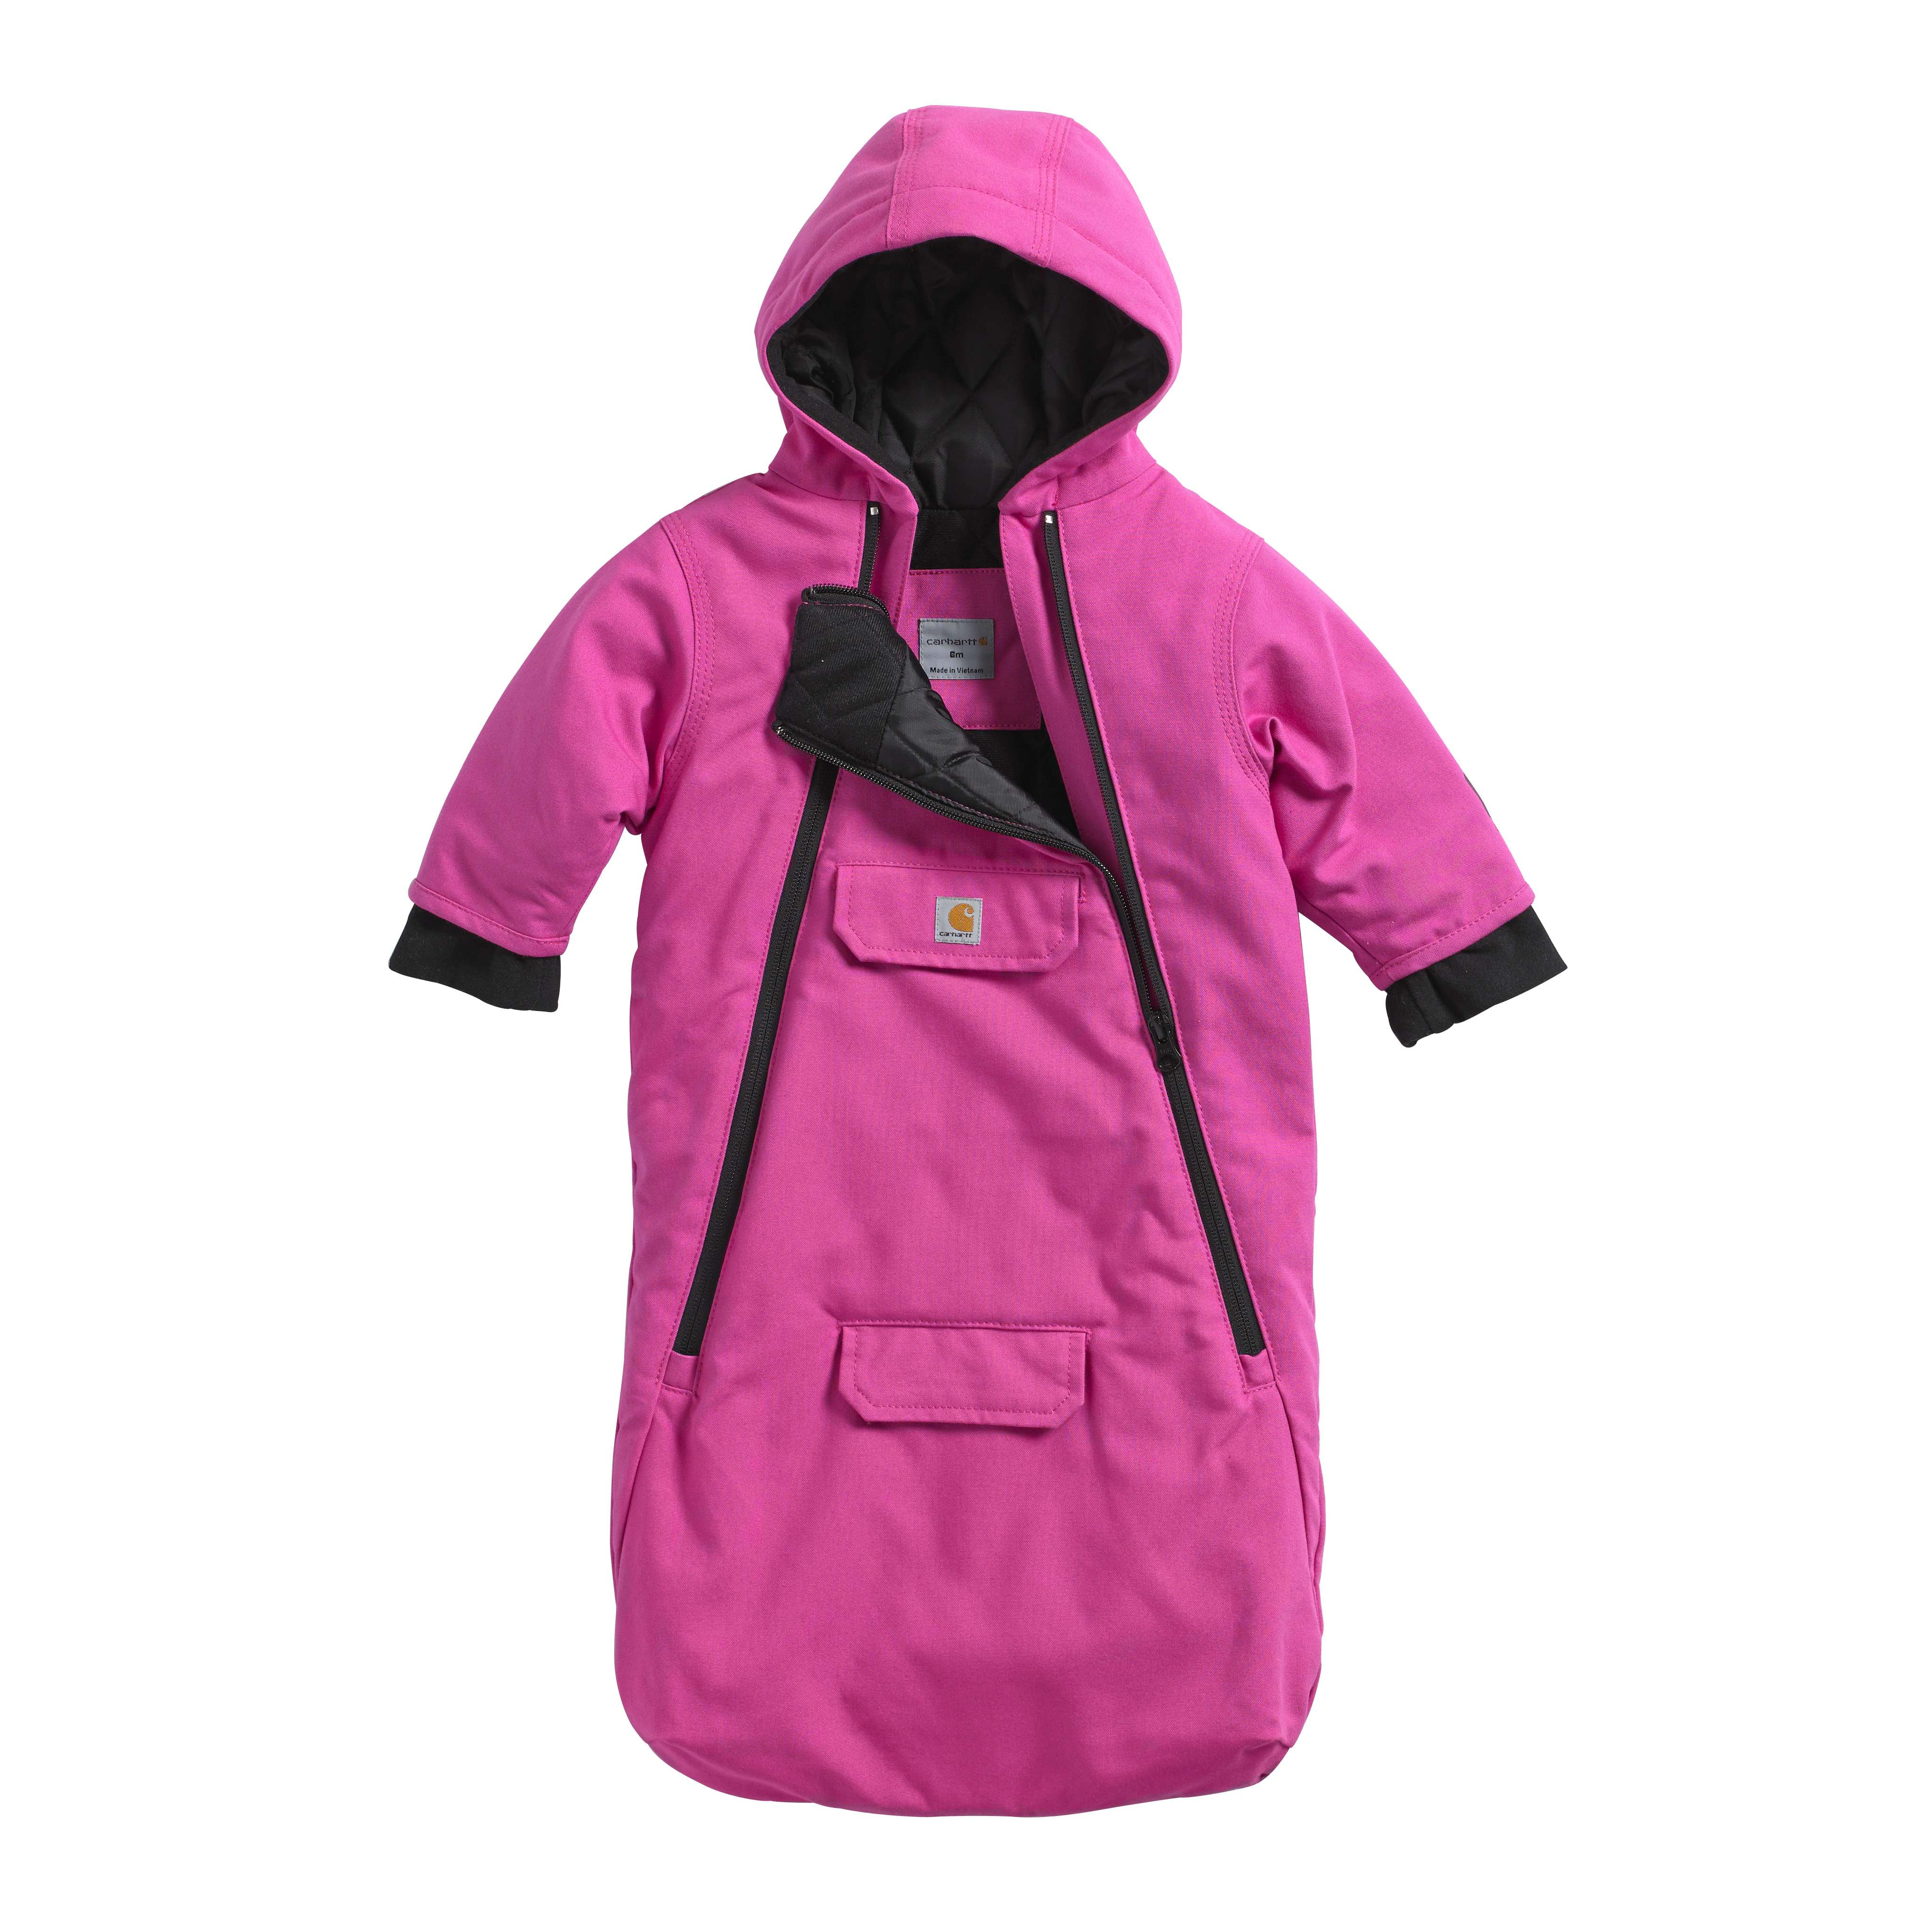 7a8adf79160 Girls  Quick Duck Bunting CM9642